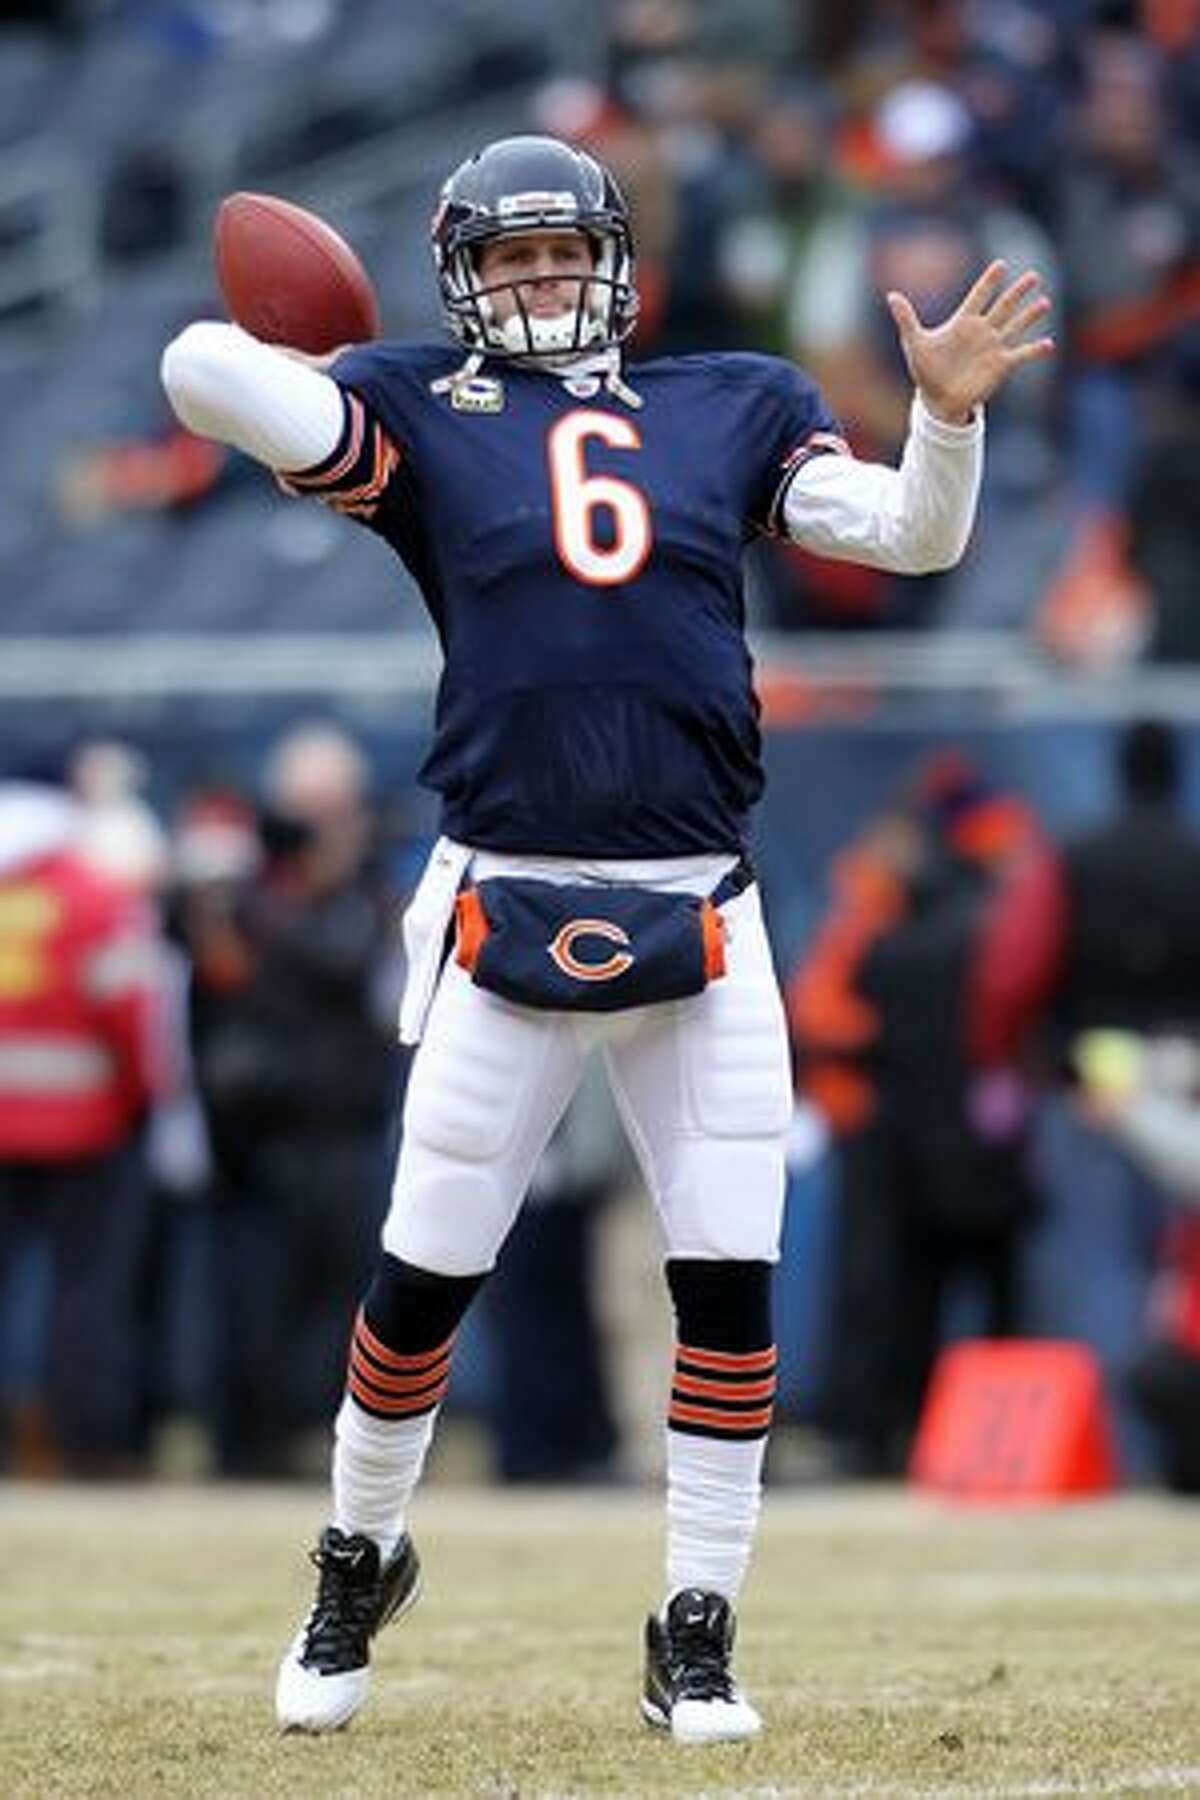 CHICAGO, IL - JANUARY 16: Quarterback Jay Cutler #6 of the Chicago Bears throws the ball during pregame before the Bears take on the Seattle Seahawks in the 2011 NFC divisional playoff game at Soldier Field on January 16, 2011 in Chicago, Illinois.